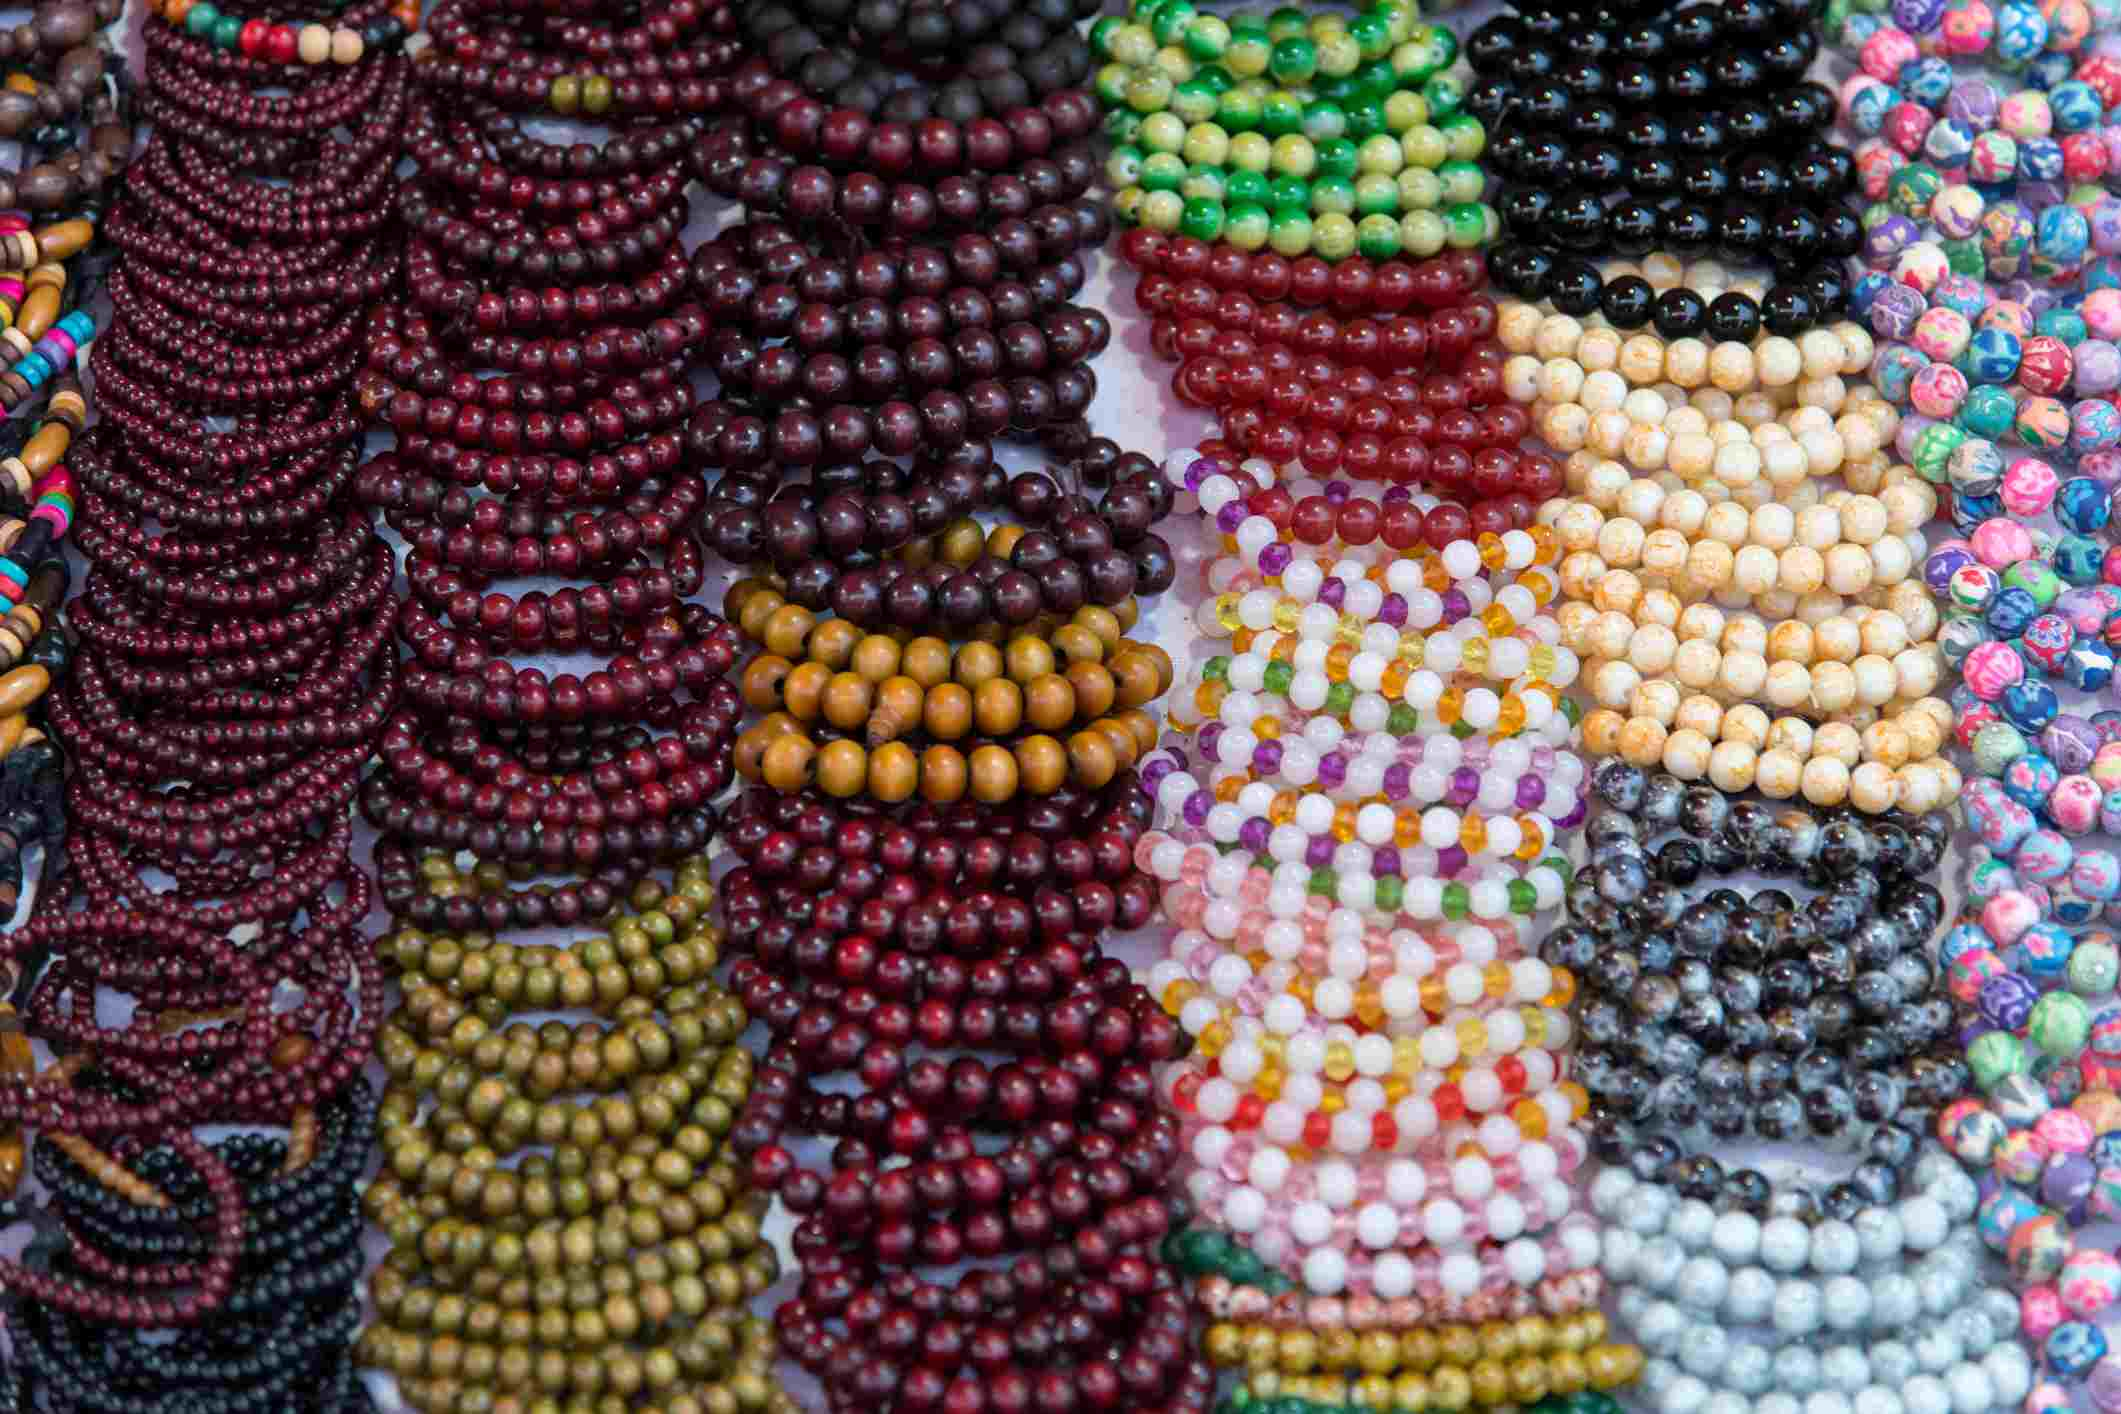 Multicolored bracelets at market